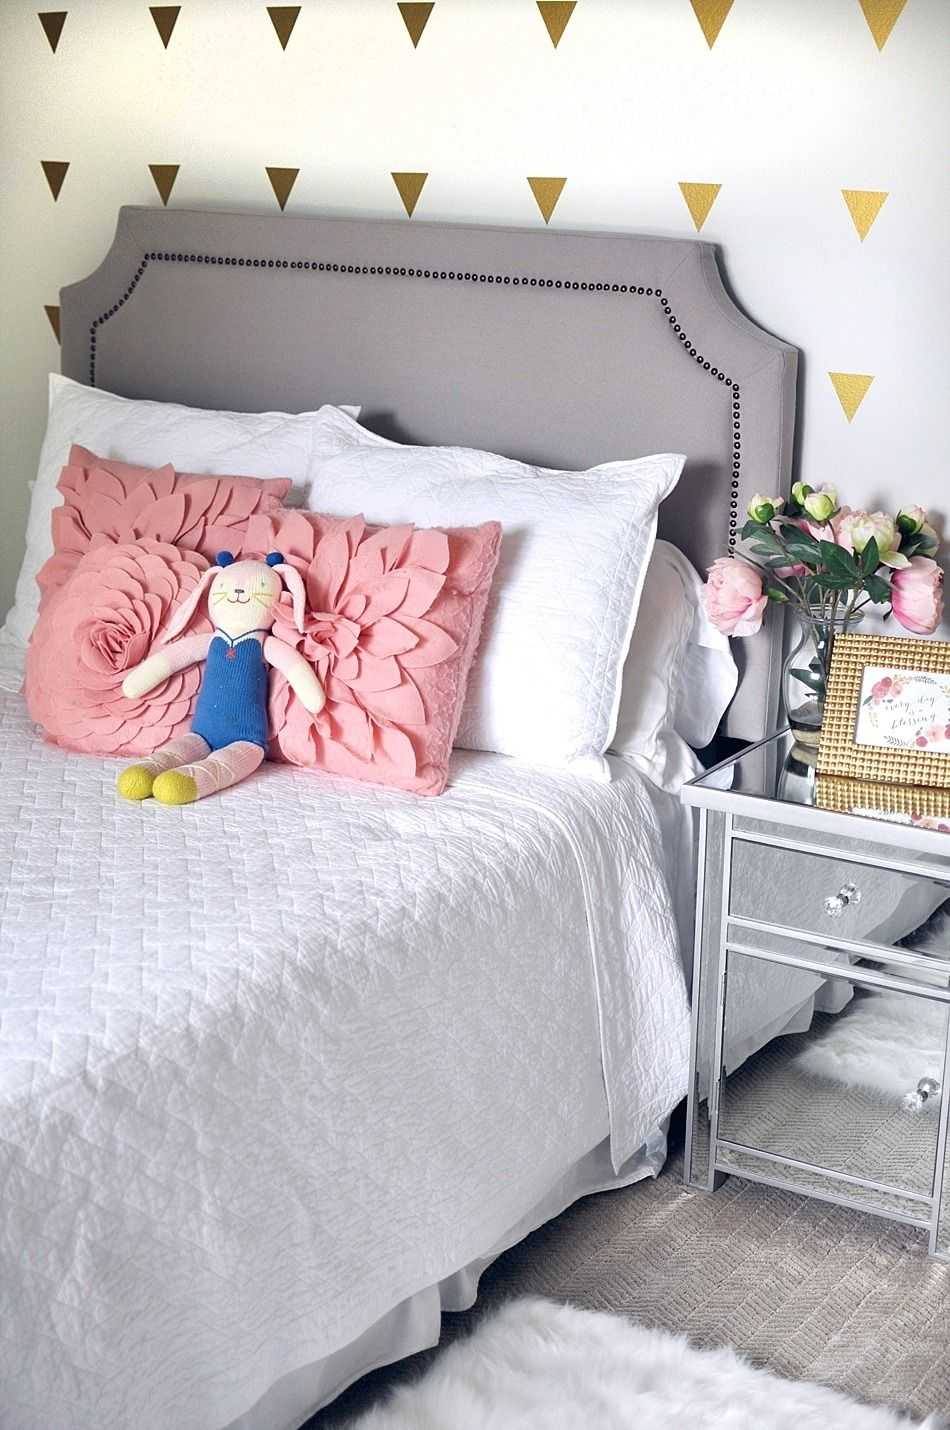 Add Pizazz With Pattern And Texture Neutral Walls Create The Perfect Canvas For Creative Touches Li Kids Room Paint Colors Children Room Girl Kids Room Paint